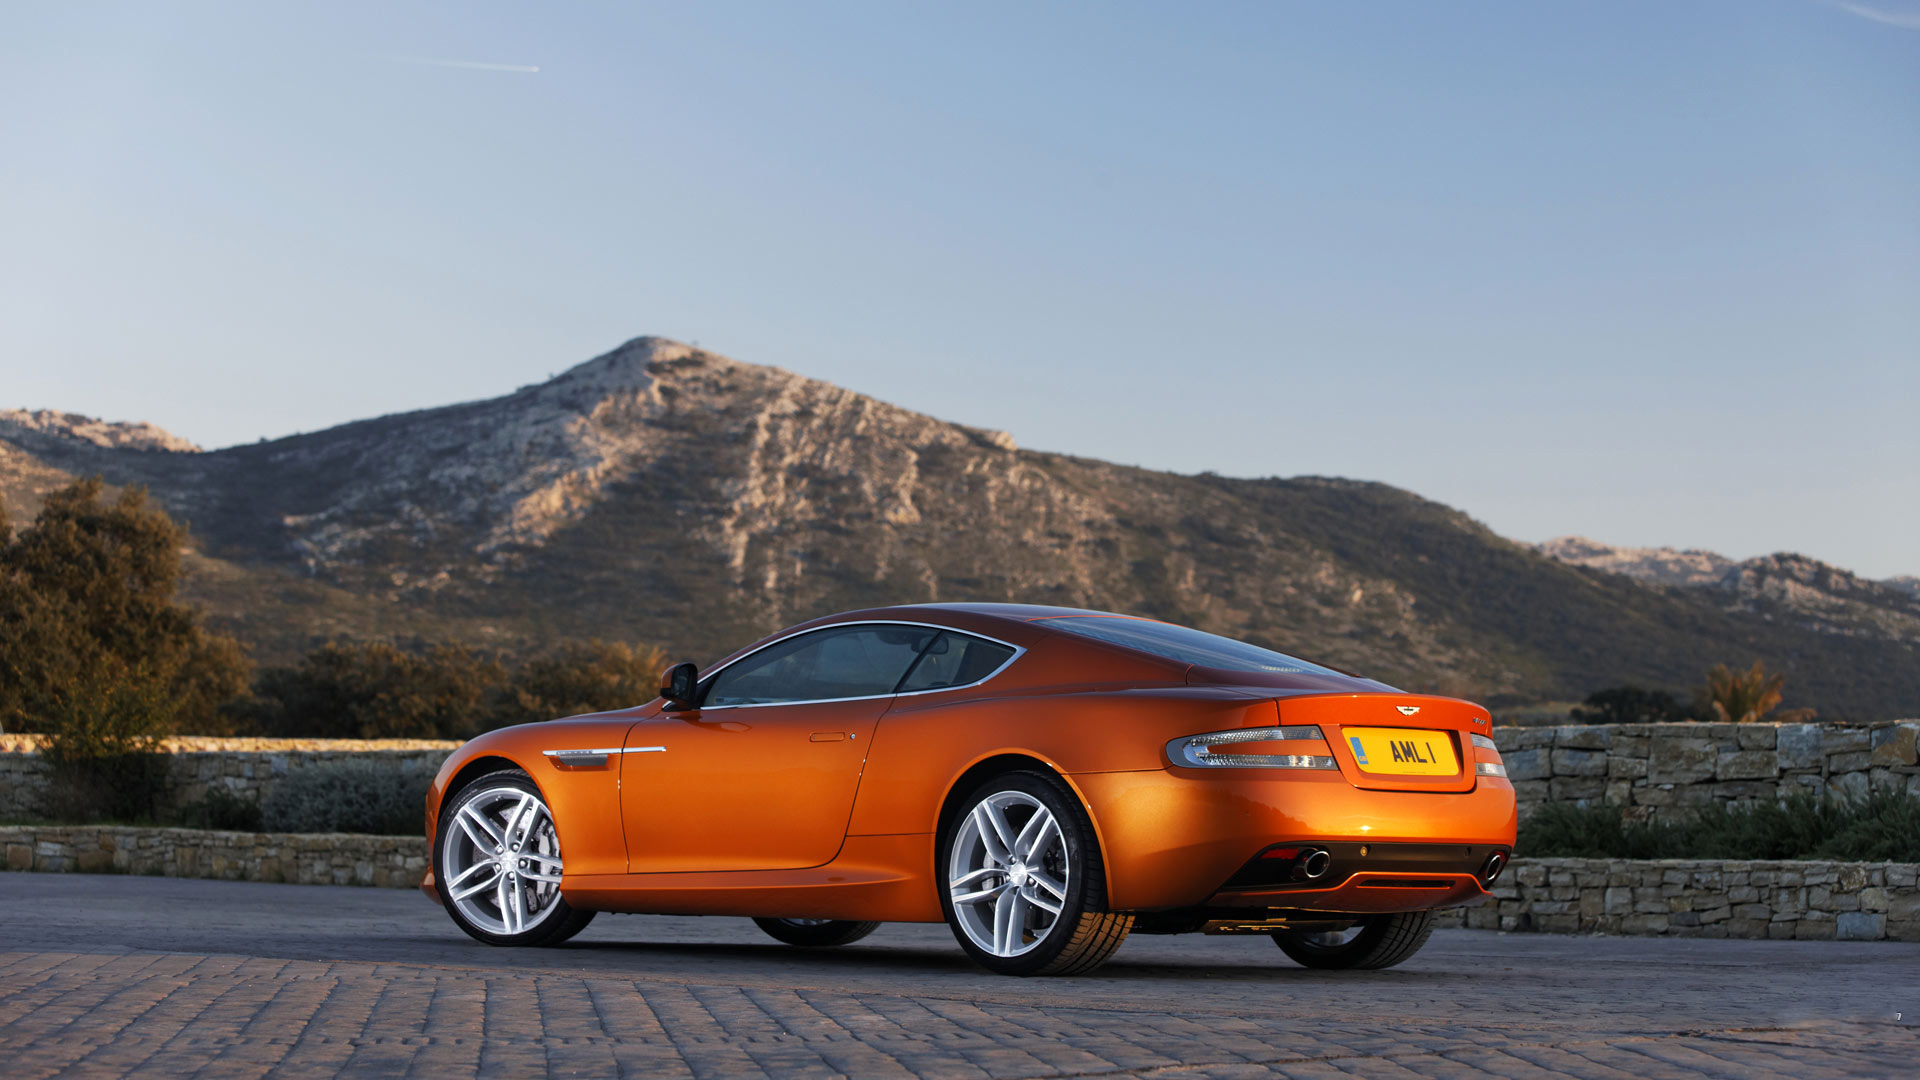 aston martin wallpaper 10697 1920x1080 px. Cars Review. Best American Auto & Cars Review